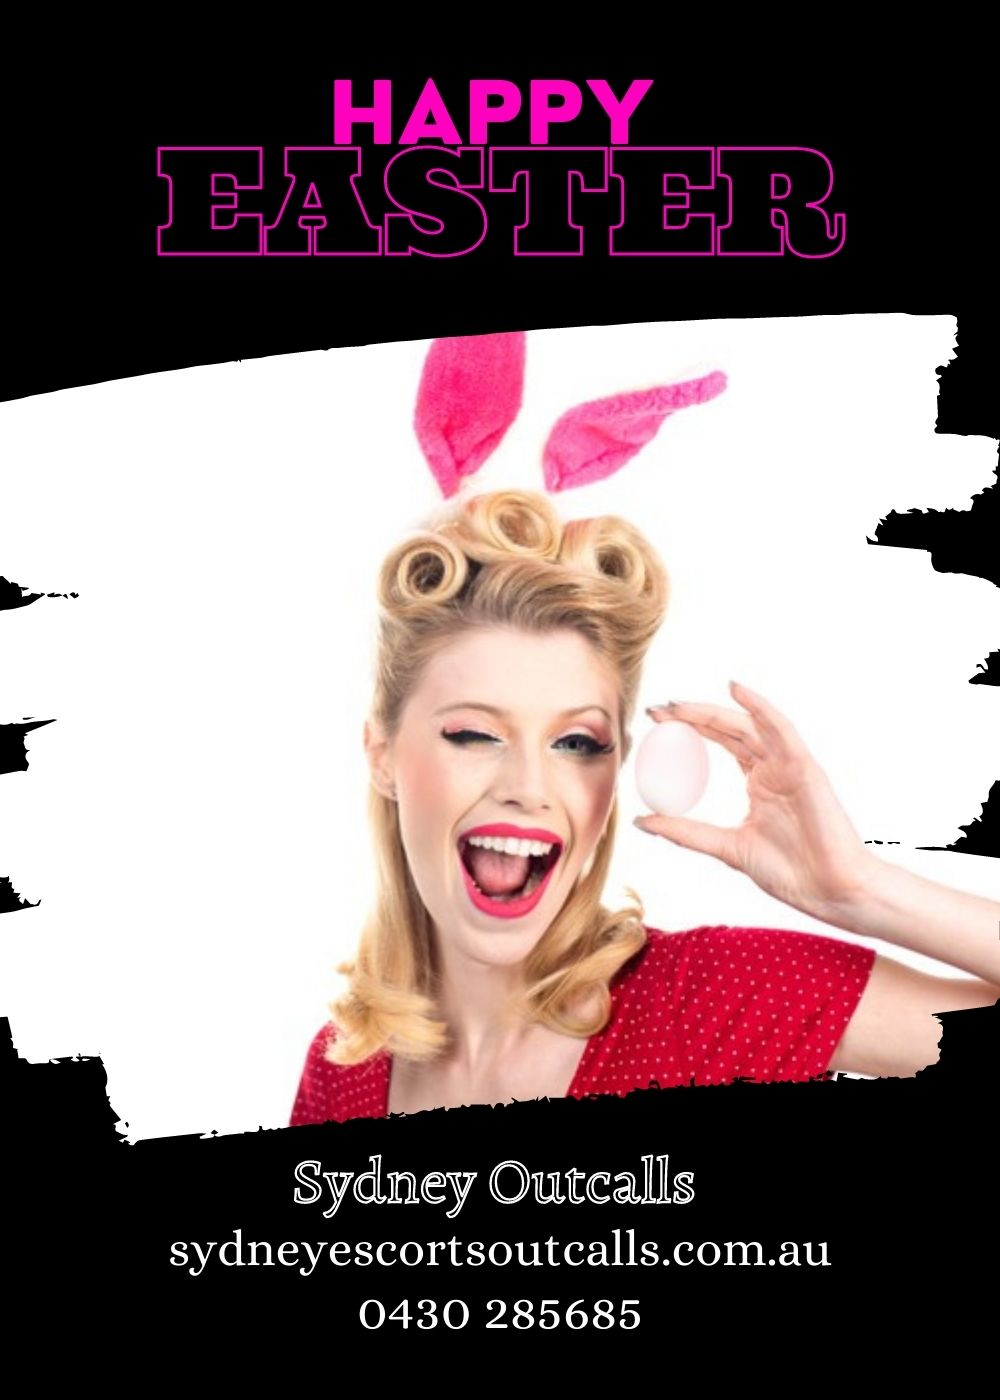 sydney outcalls with easter